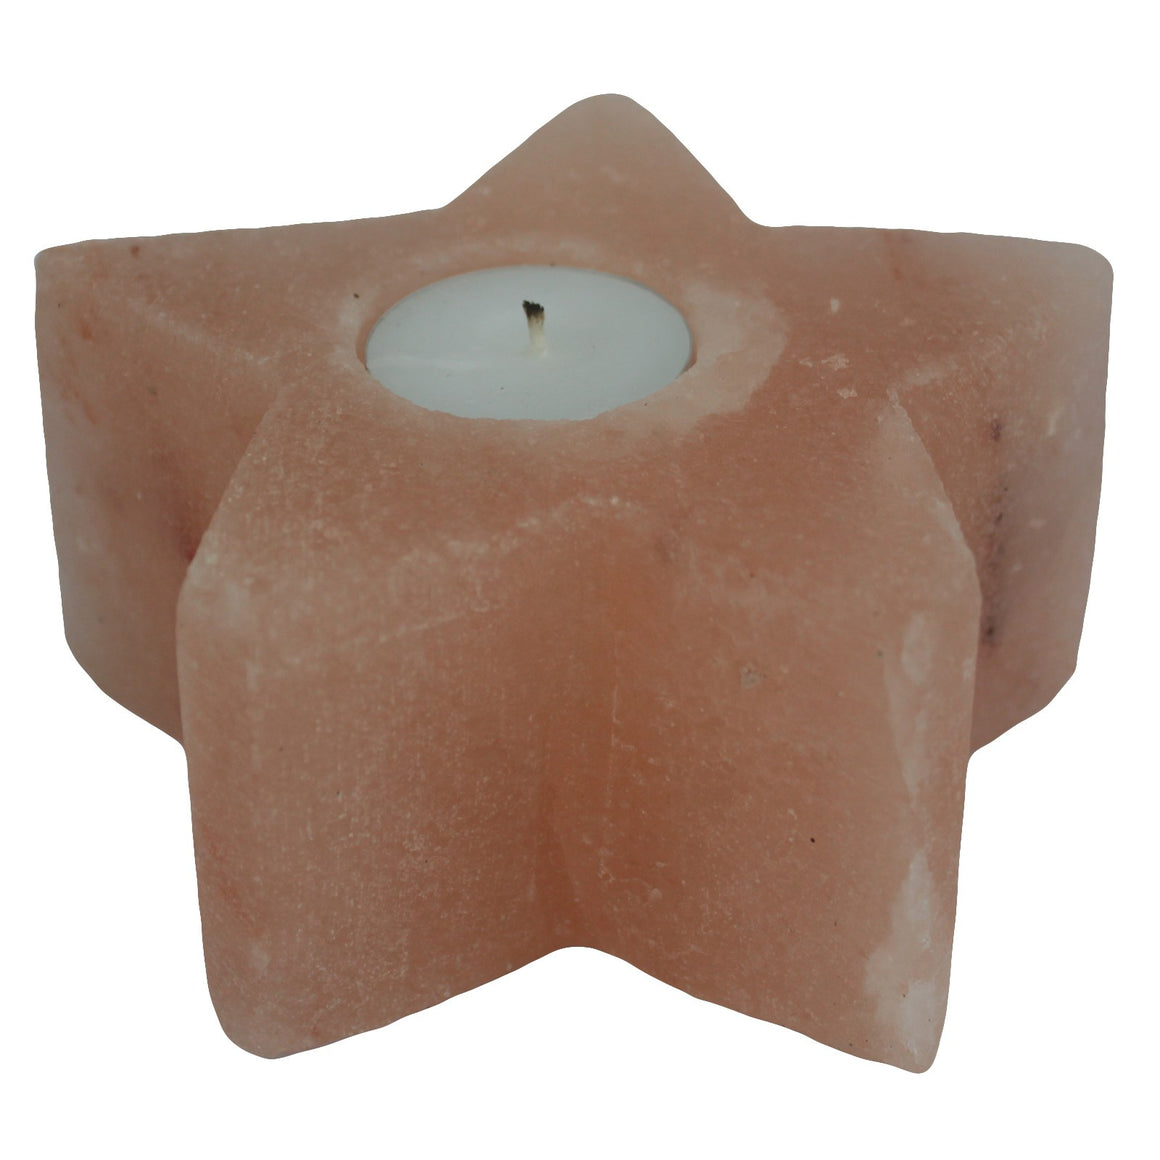 Salt Candle Holder - Star